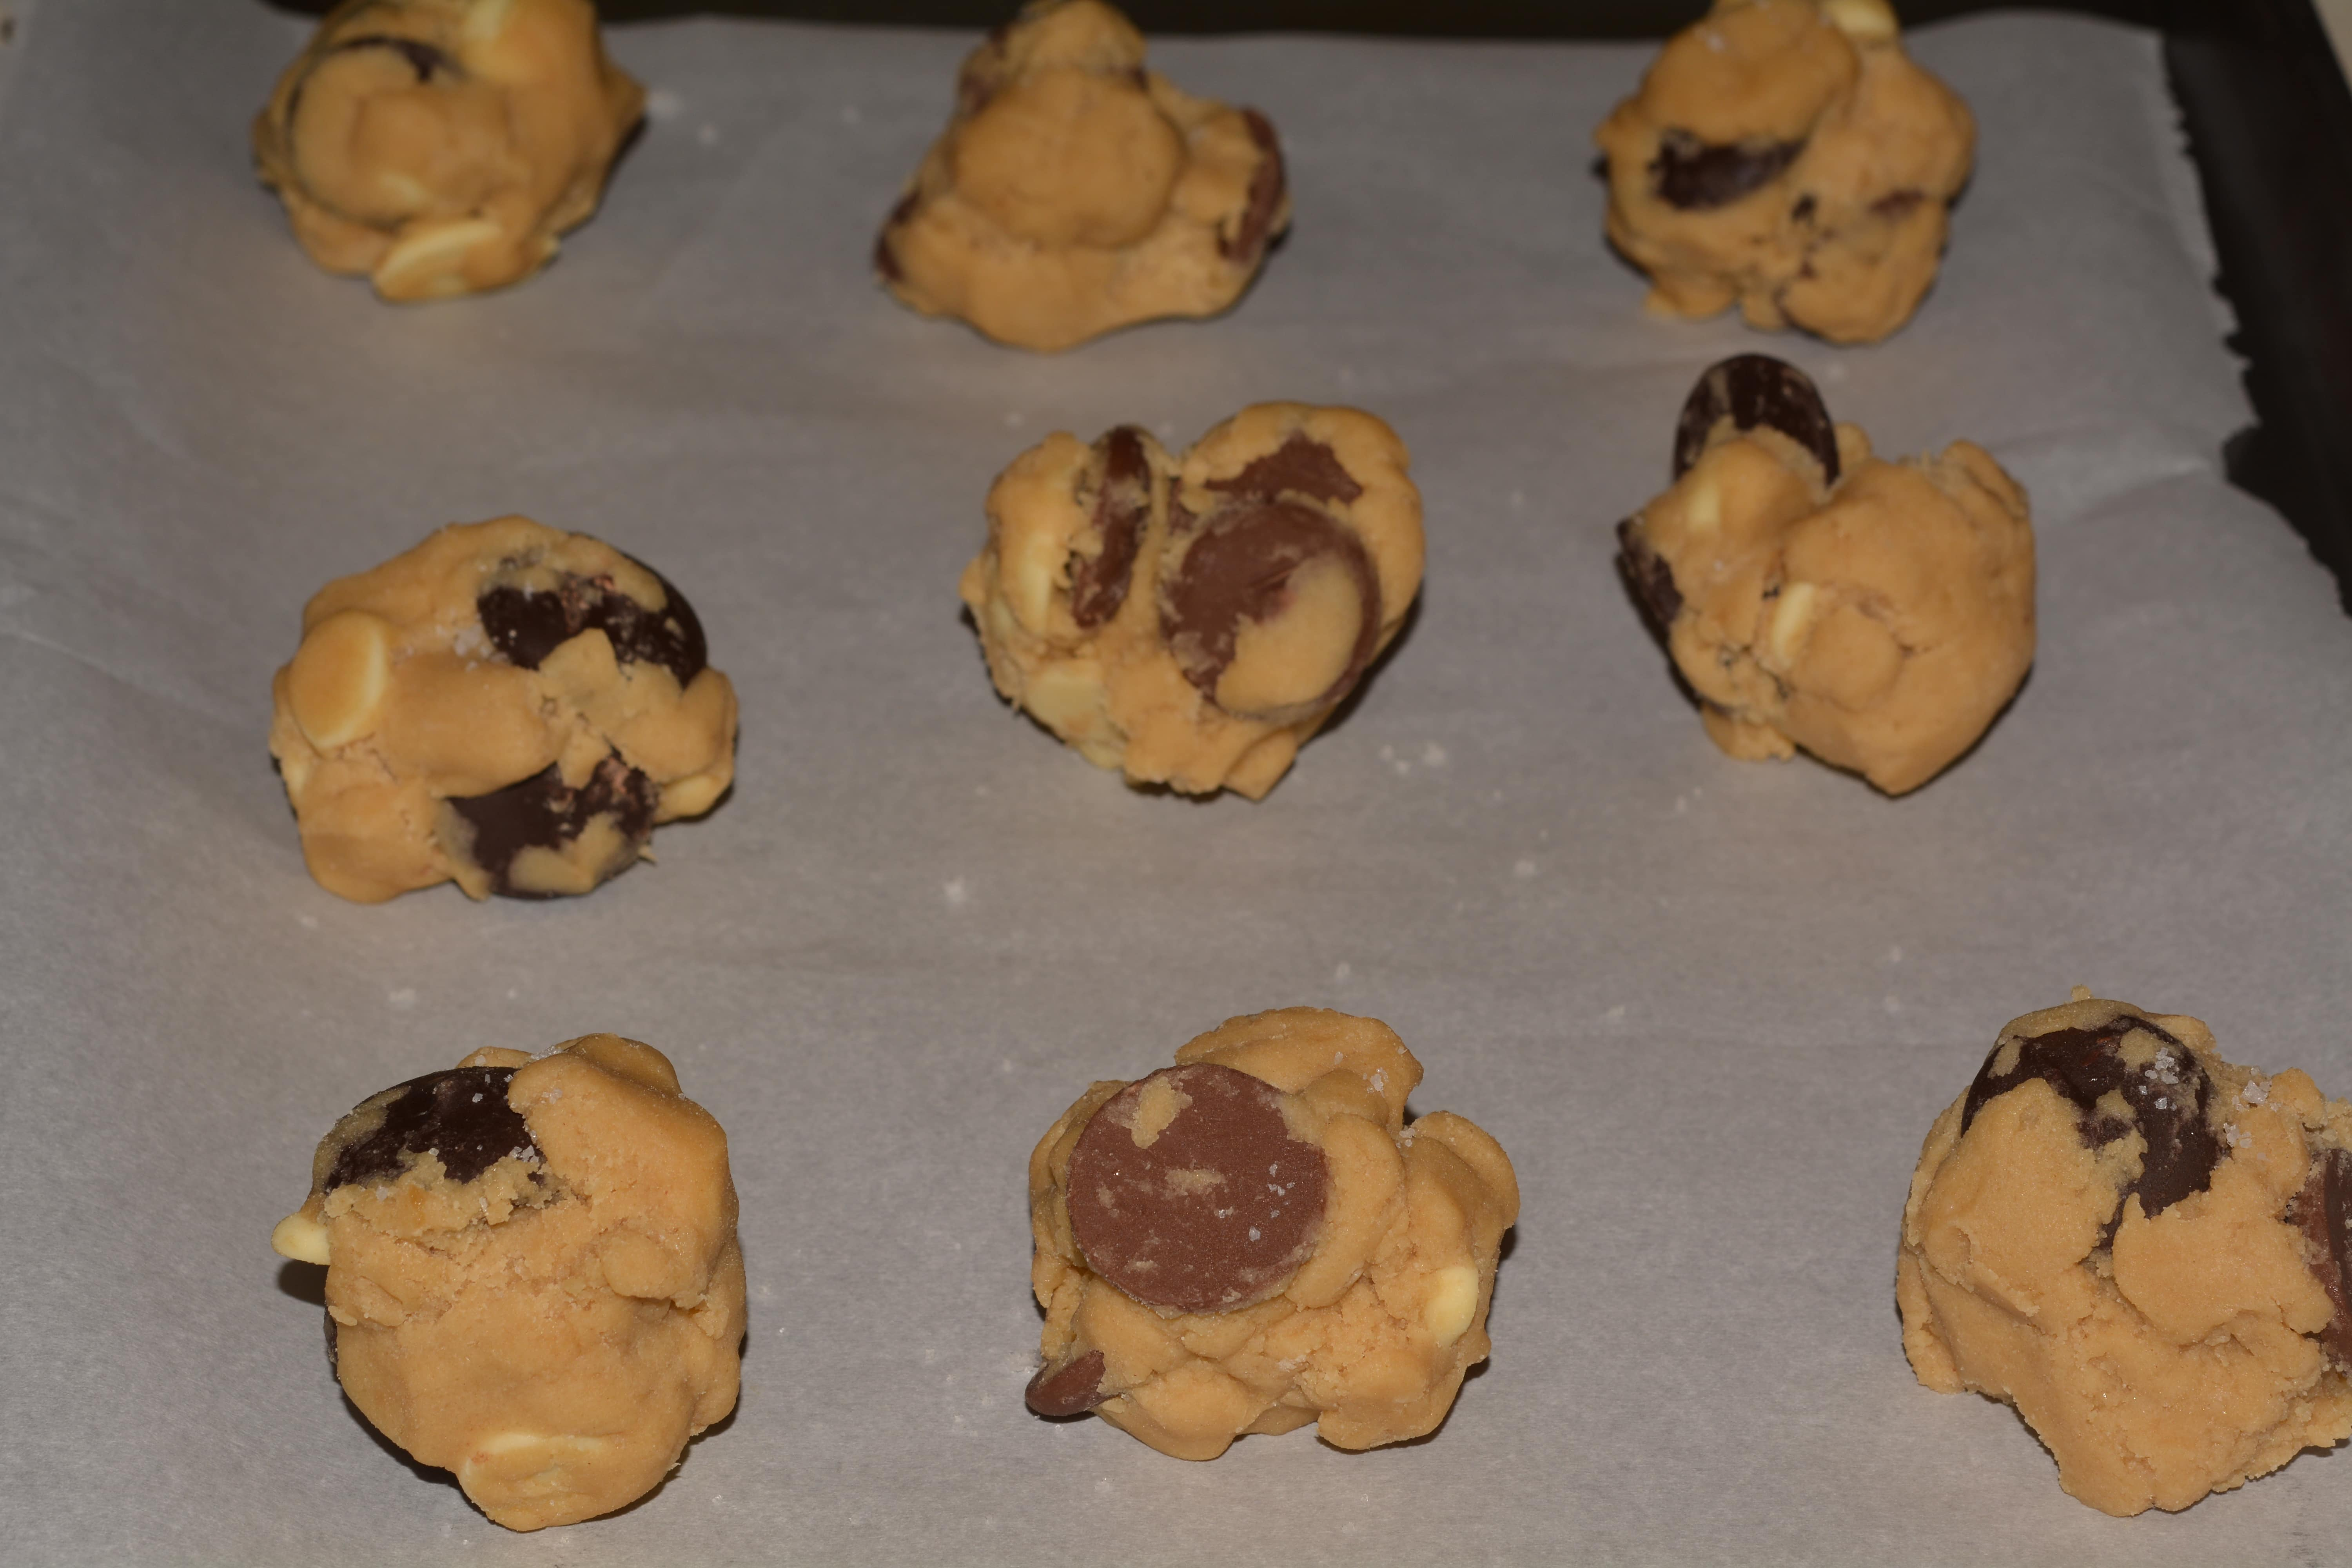 Chocolate Dipped Gummy Bear Cookies - Hugs and Cookies XOXO